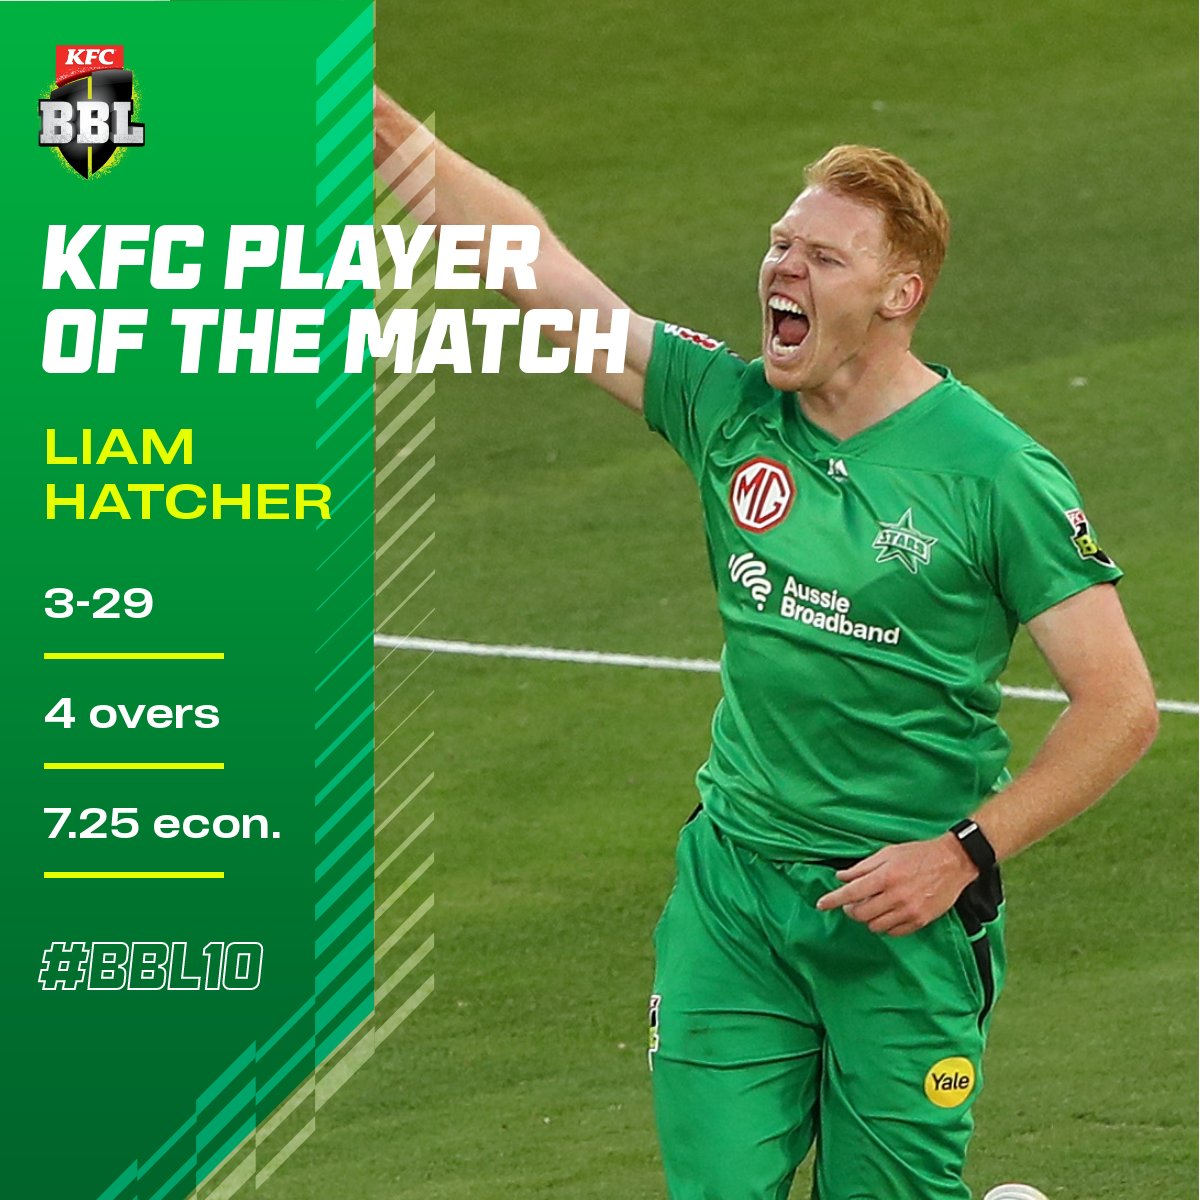 Liam Hatcher restricted the 'Gades batters brilliantly!   He's tonight's @KFCAustralia Player of the Match #BBL10 https://t.co/8xD0O9COPE